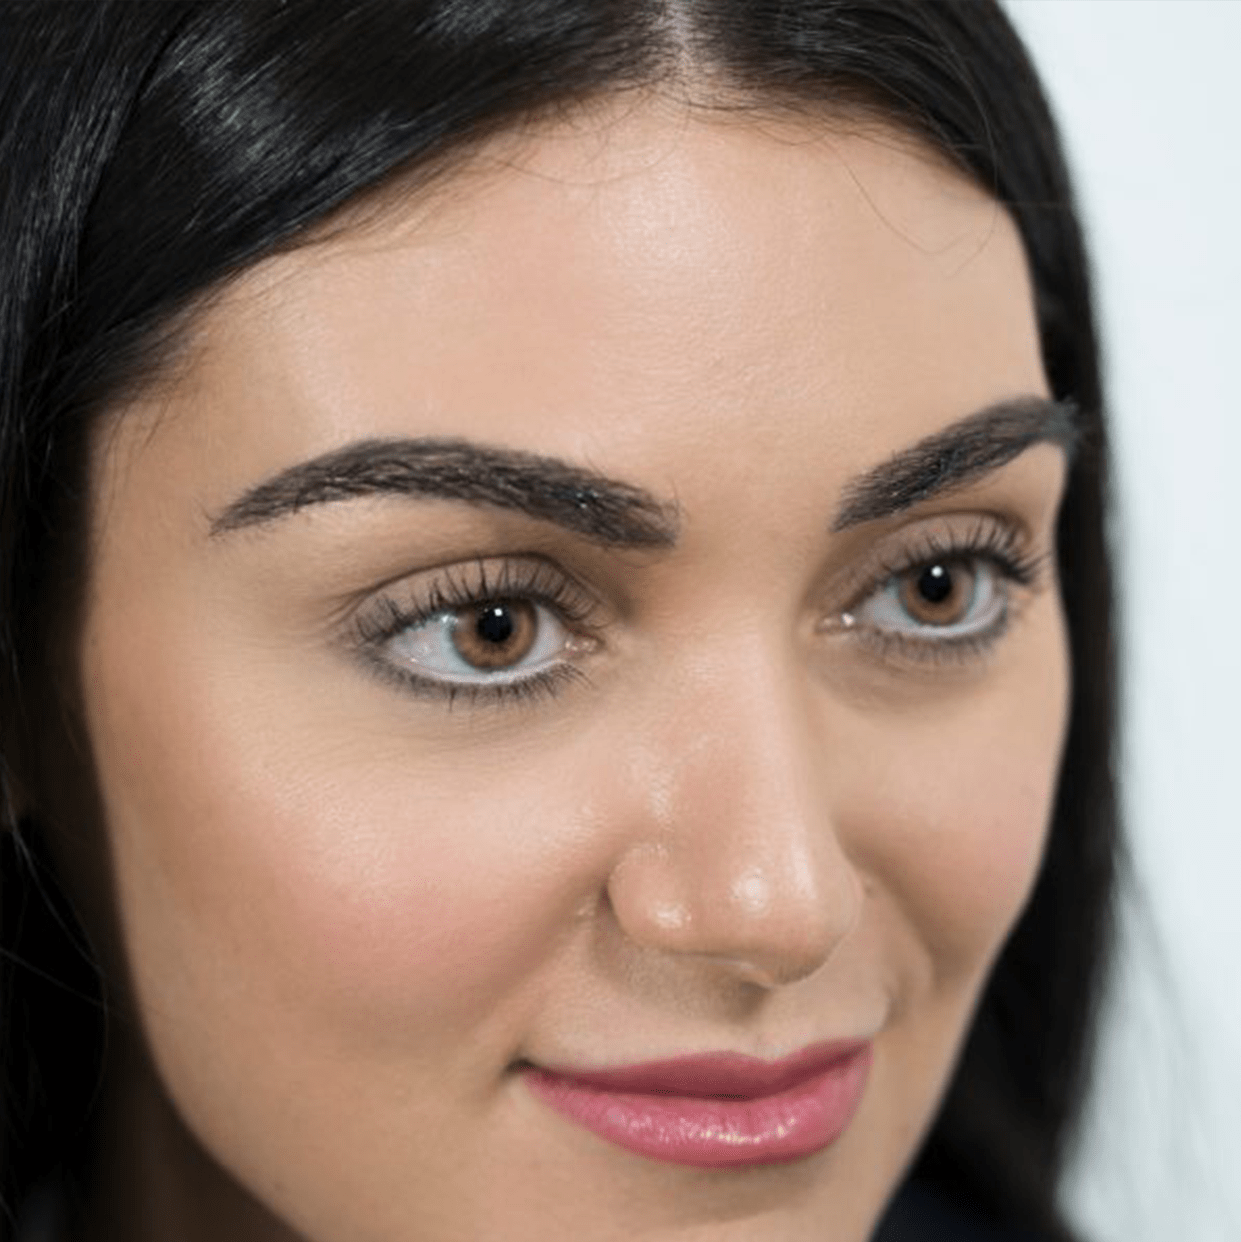 After-Female Eyebrow Transplant